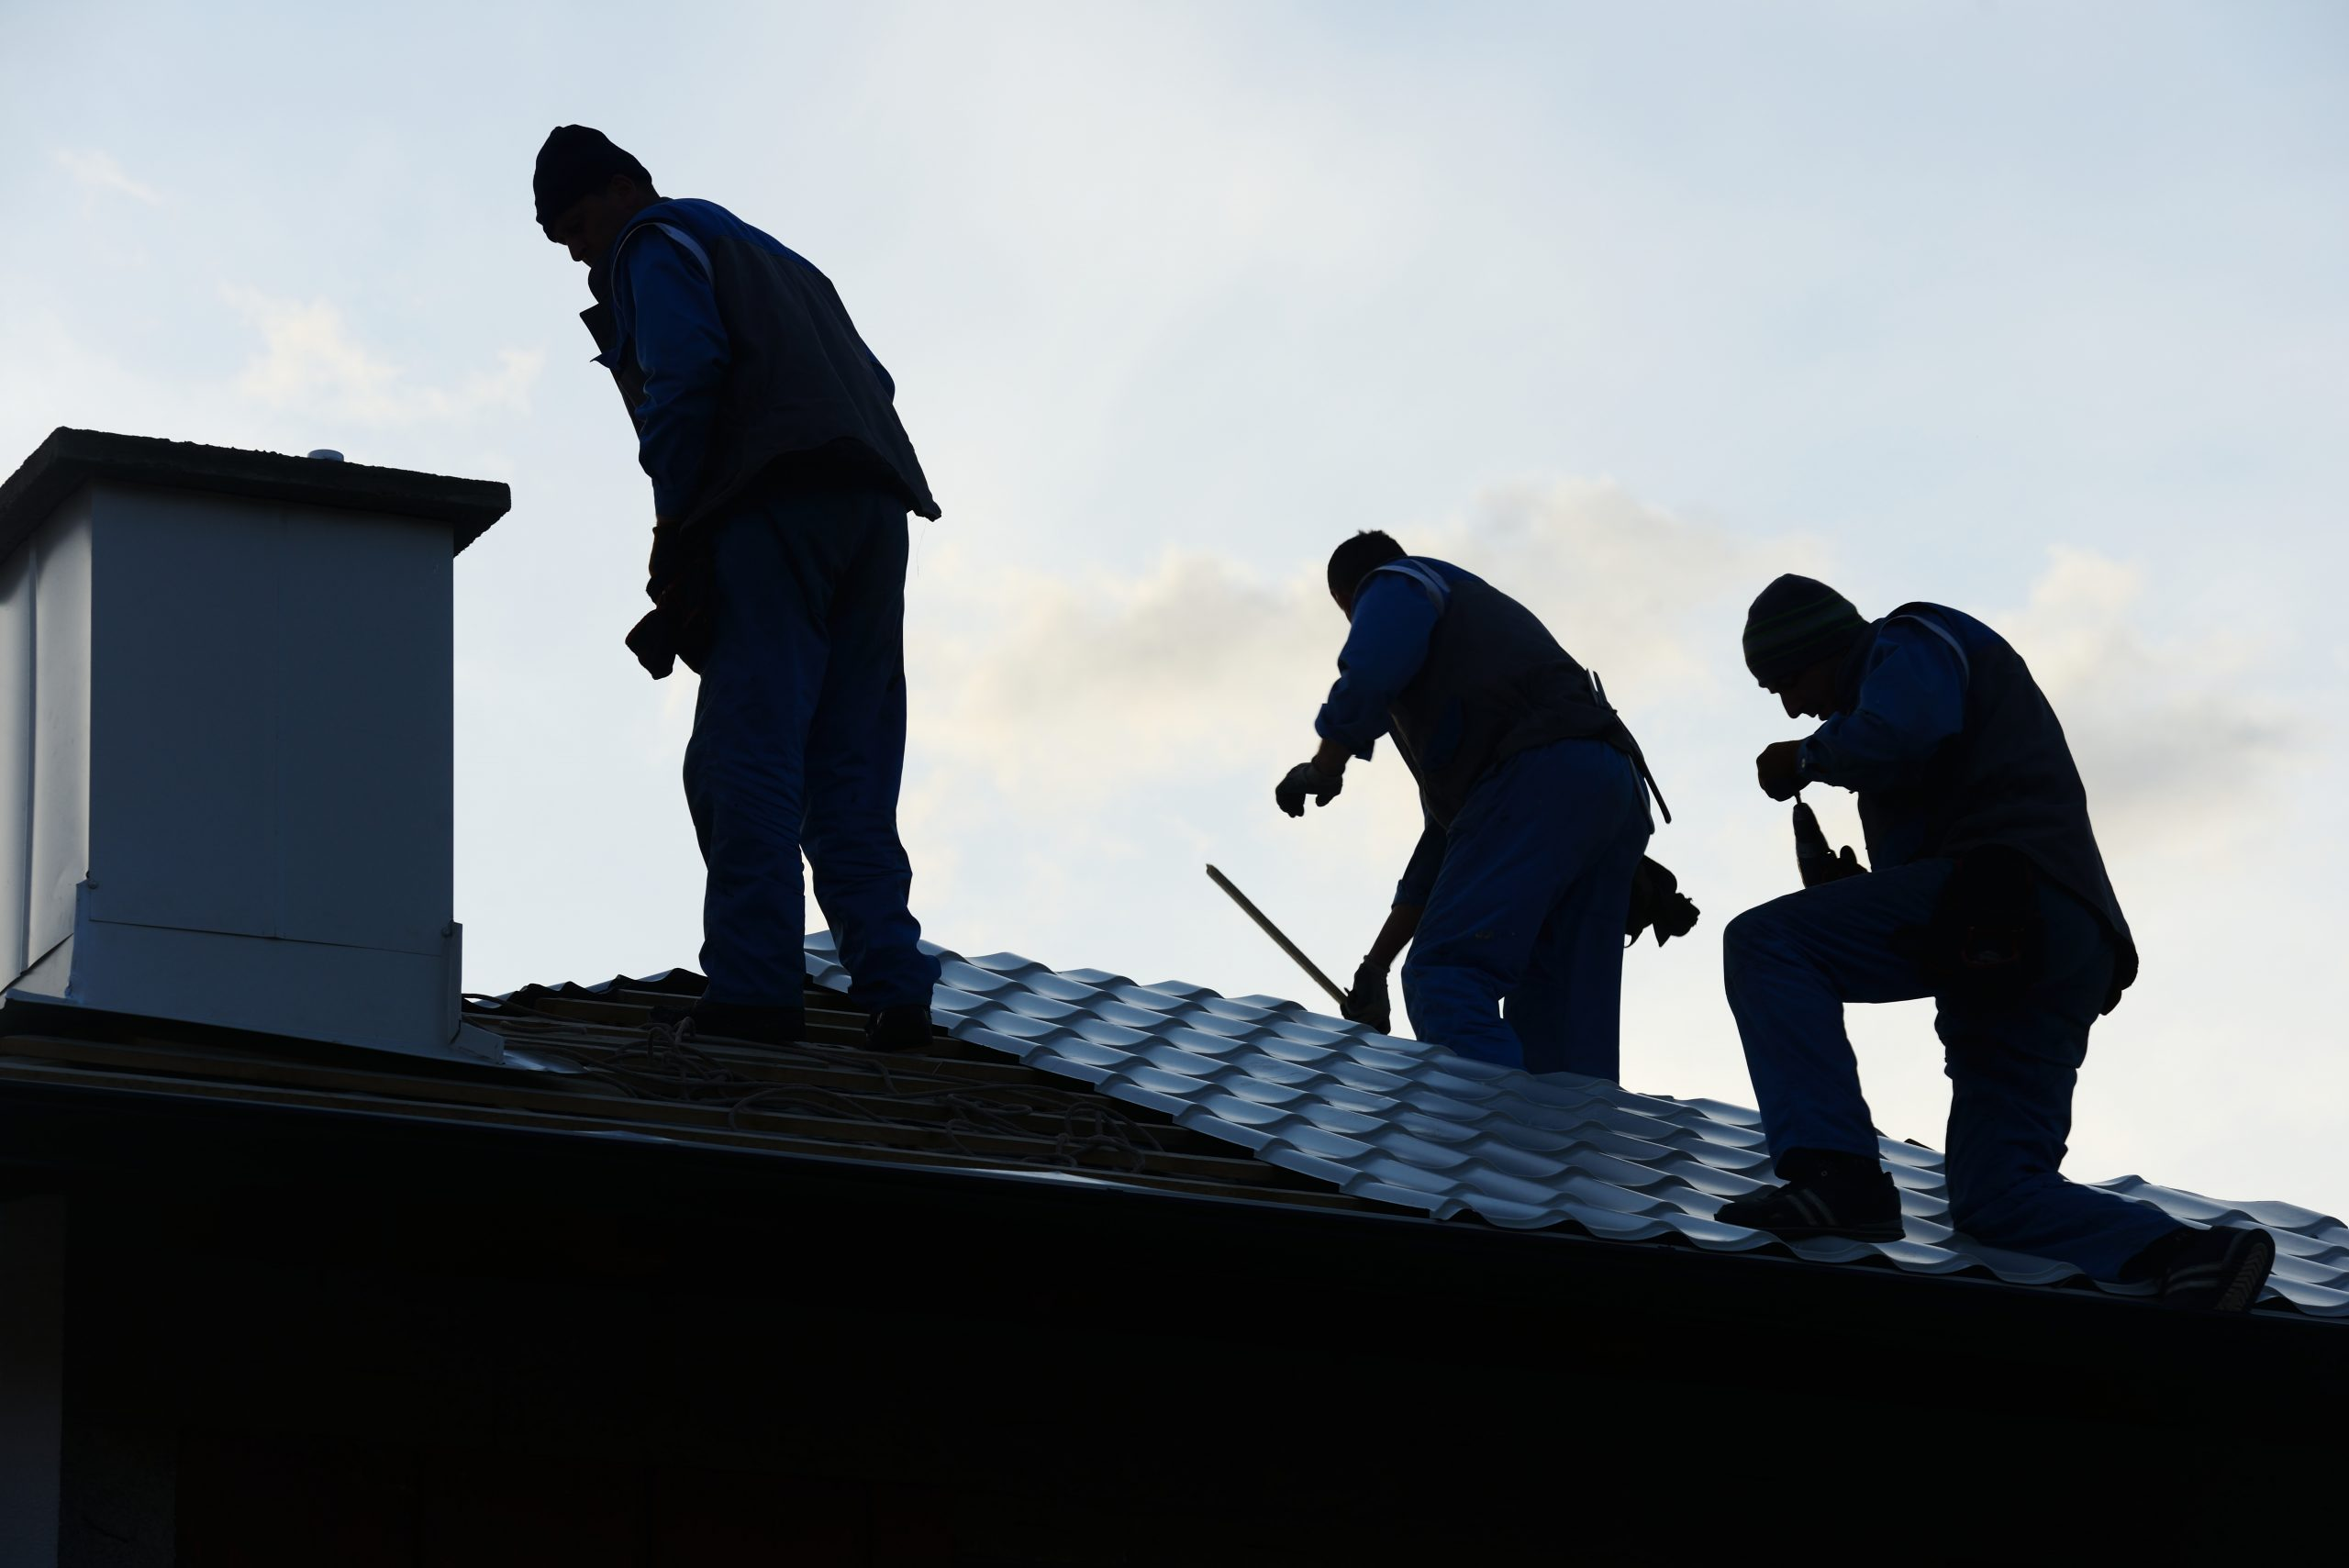 Roof cleaning: How to do a professional cleaning step by step